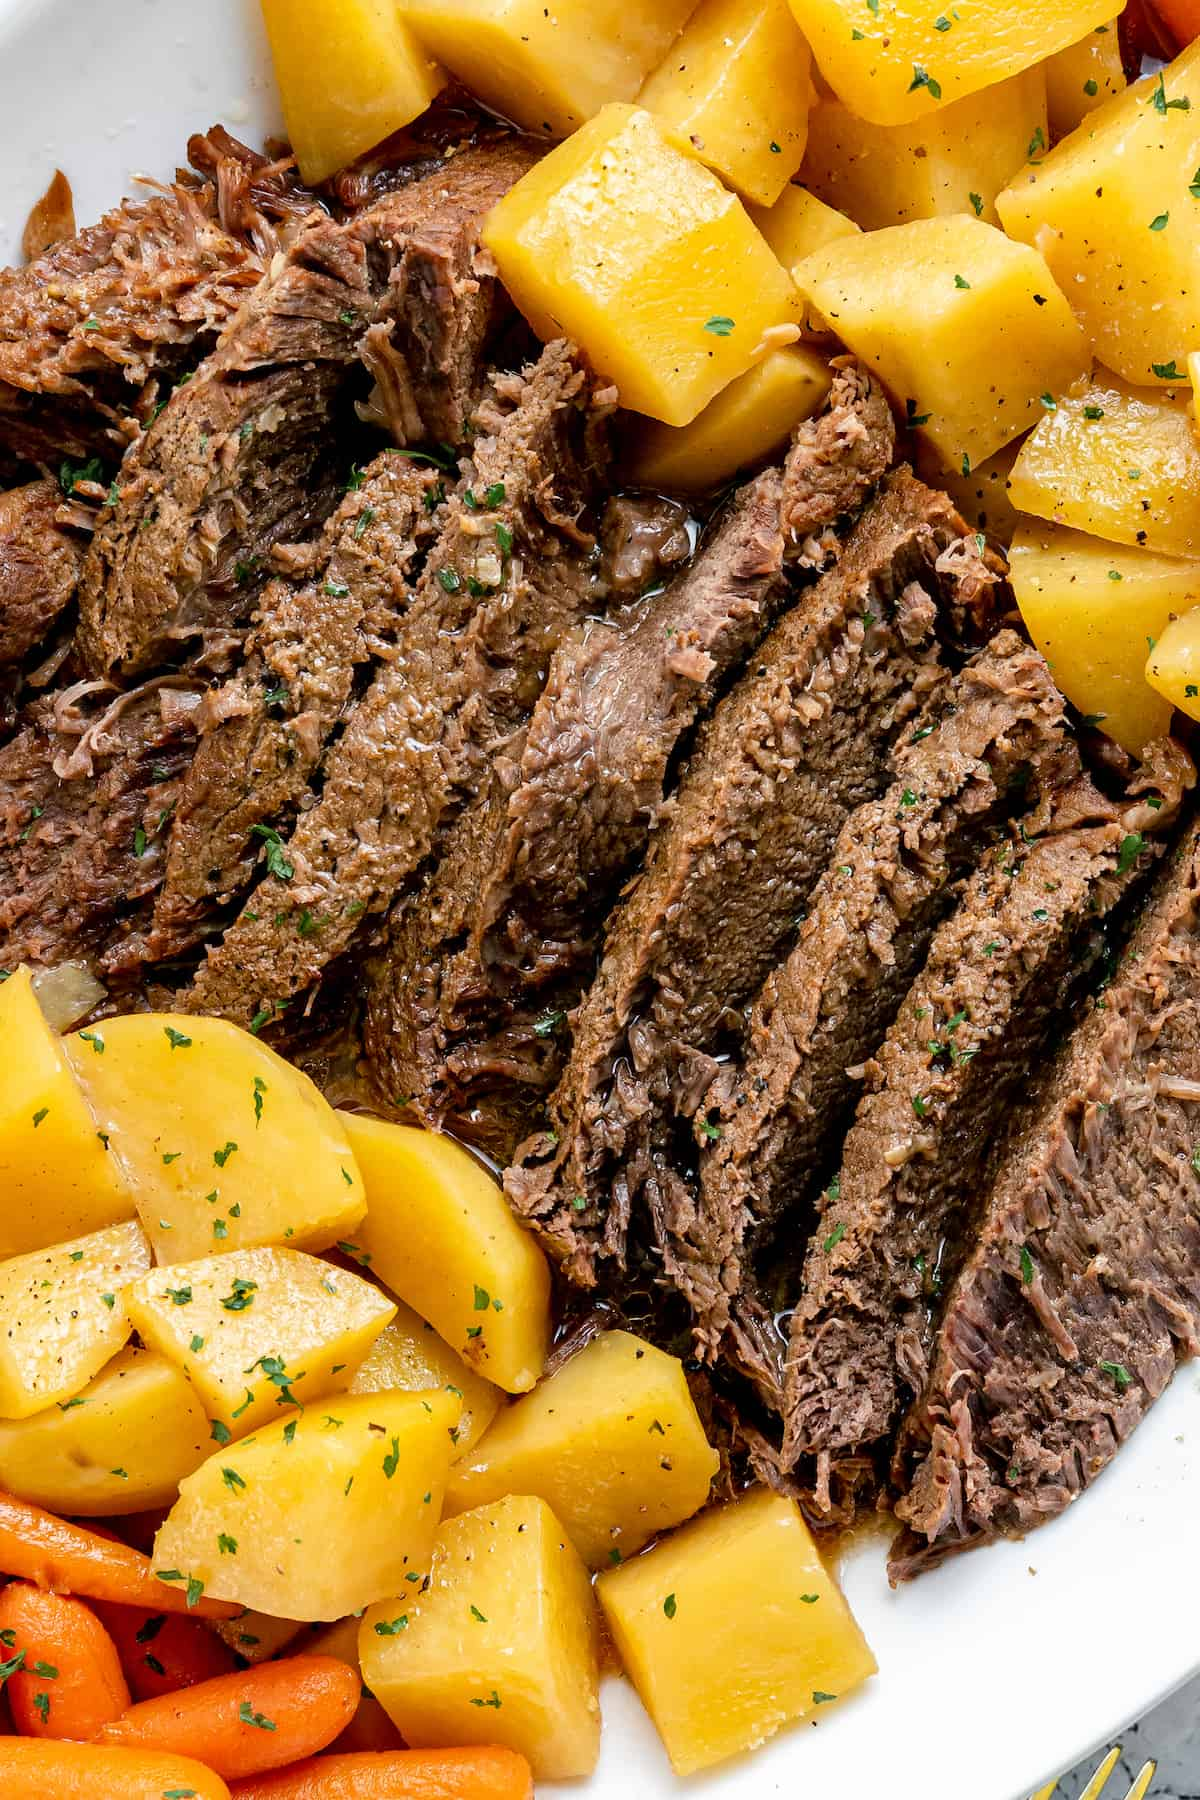 Pot roast with potatoes on a white plate